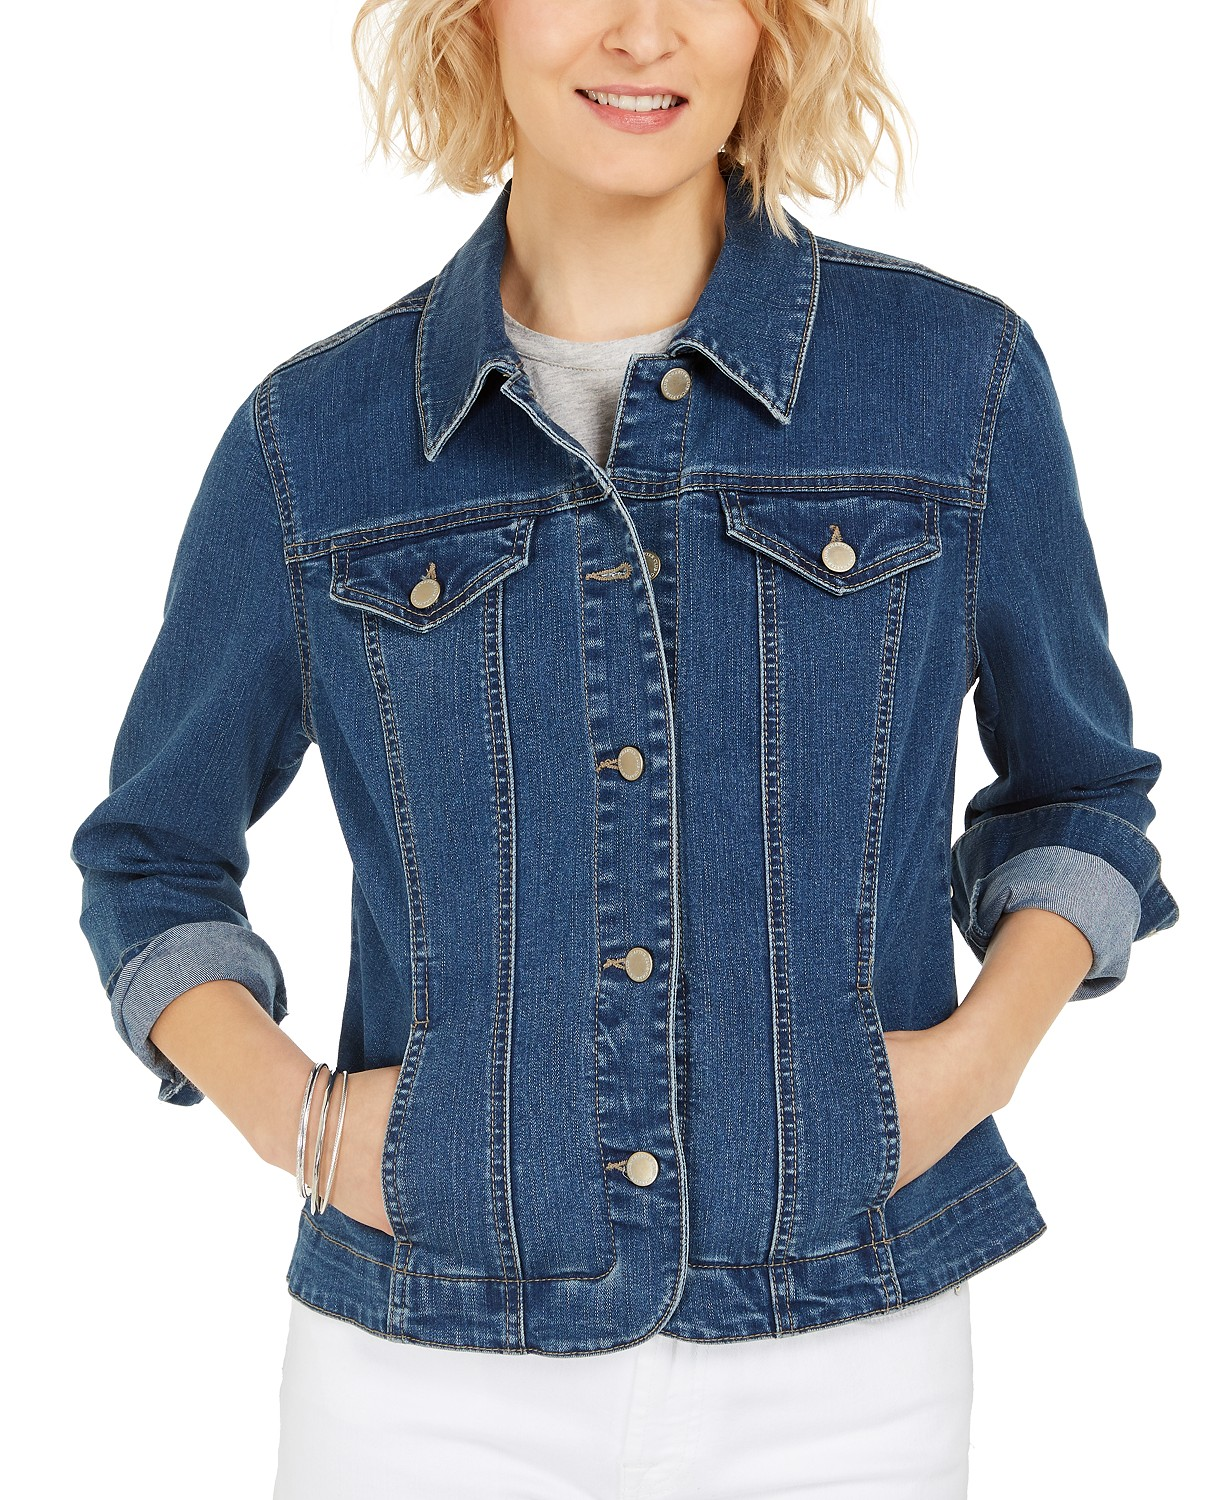 Charter Club Denim Jacket